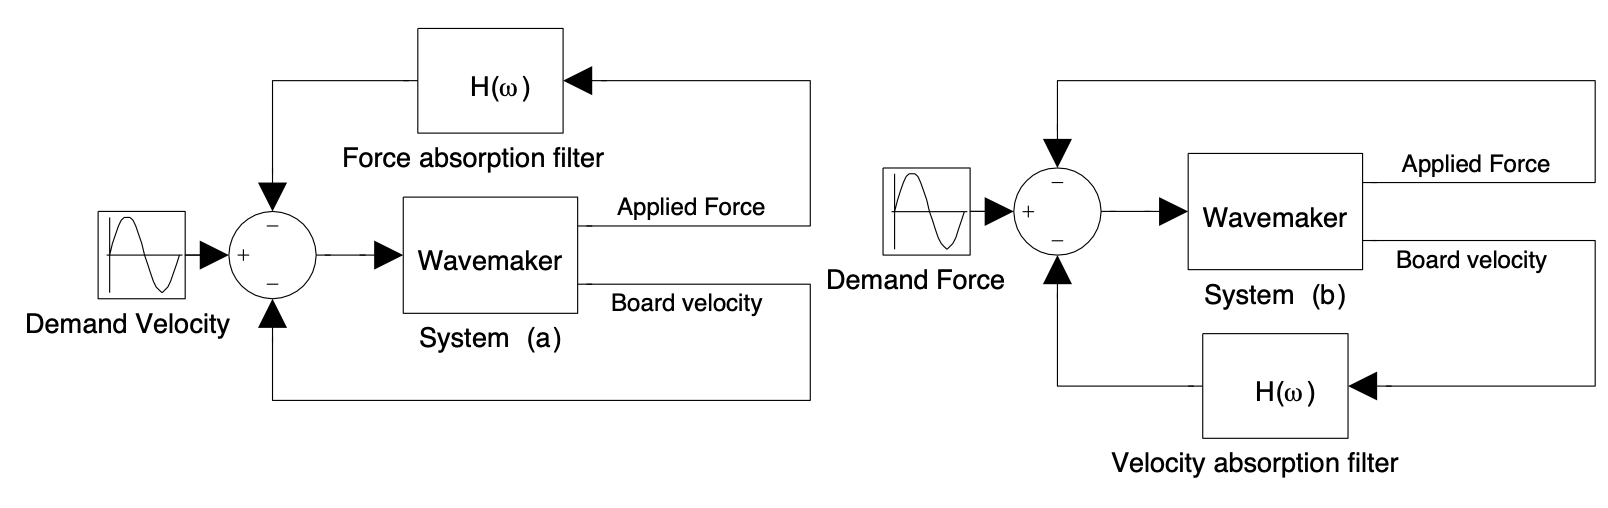 Force-control for absorbing wave maker